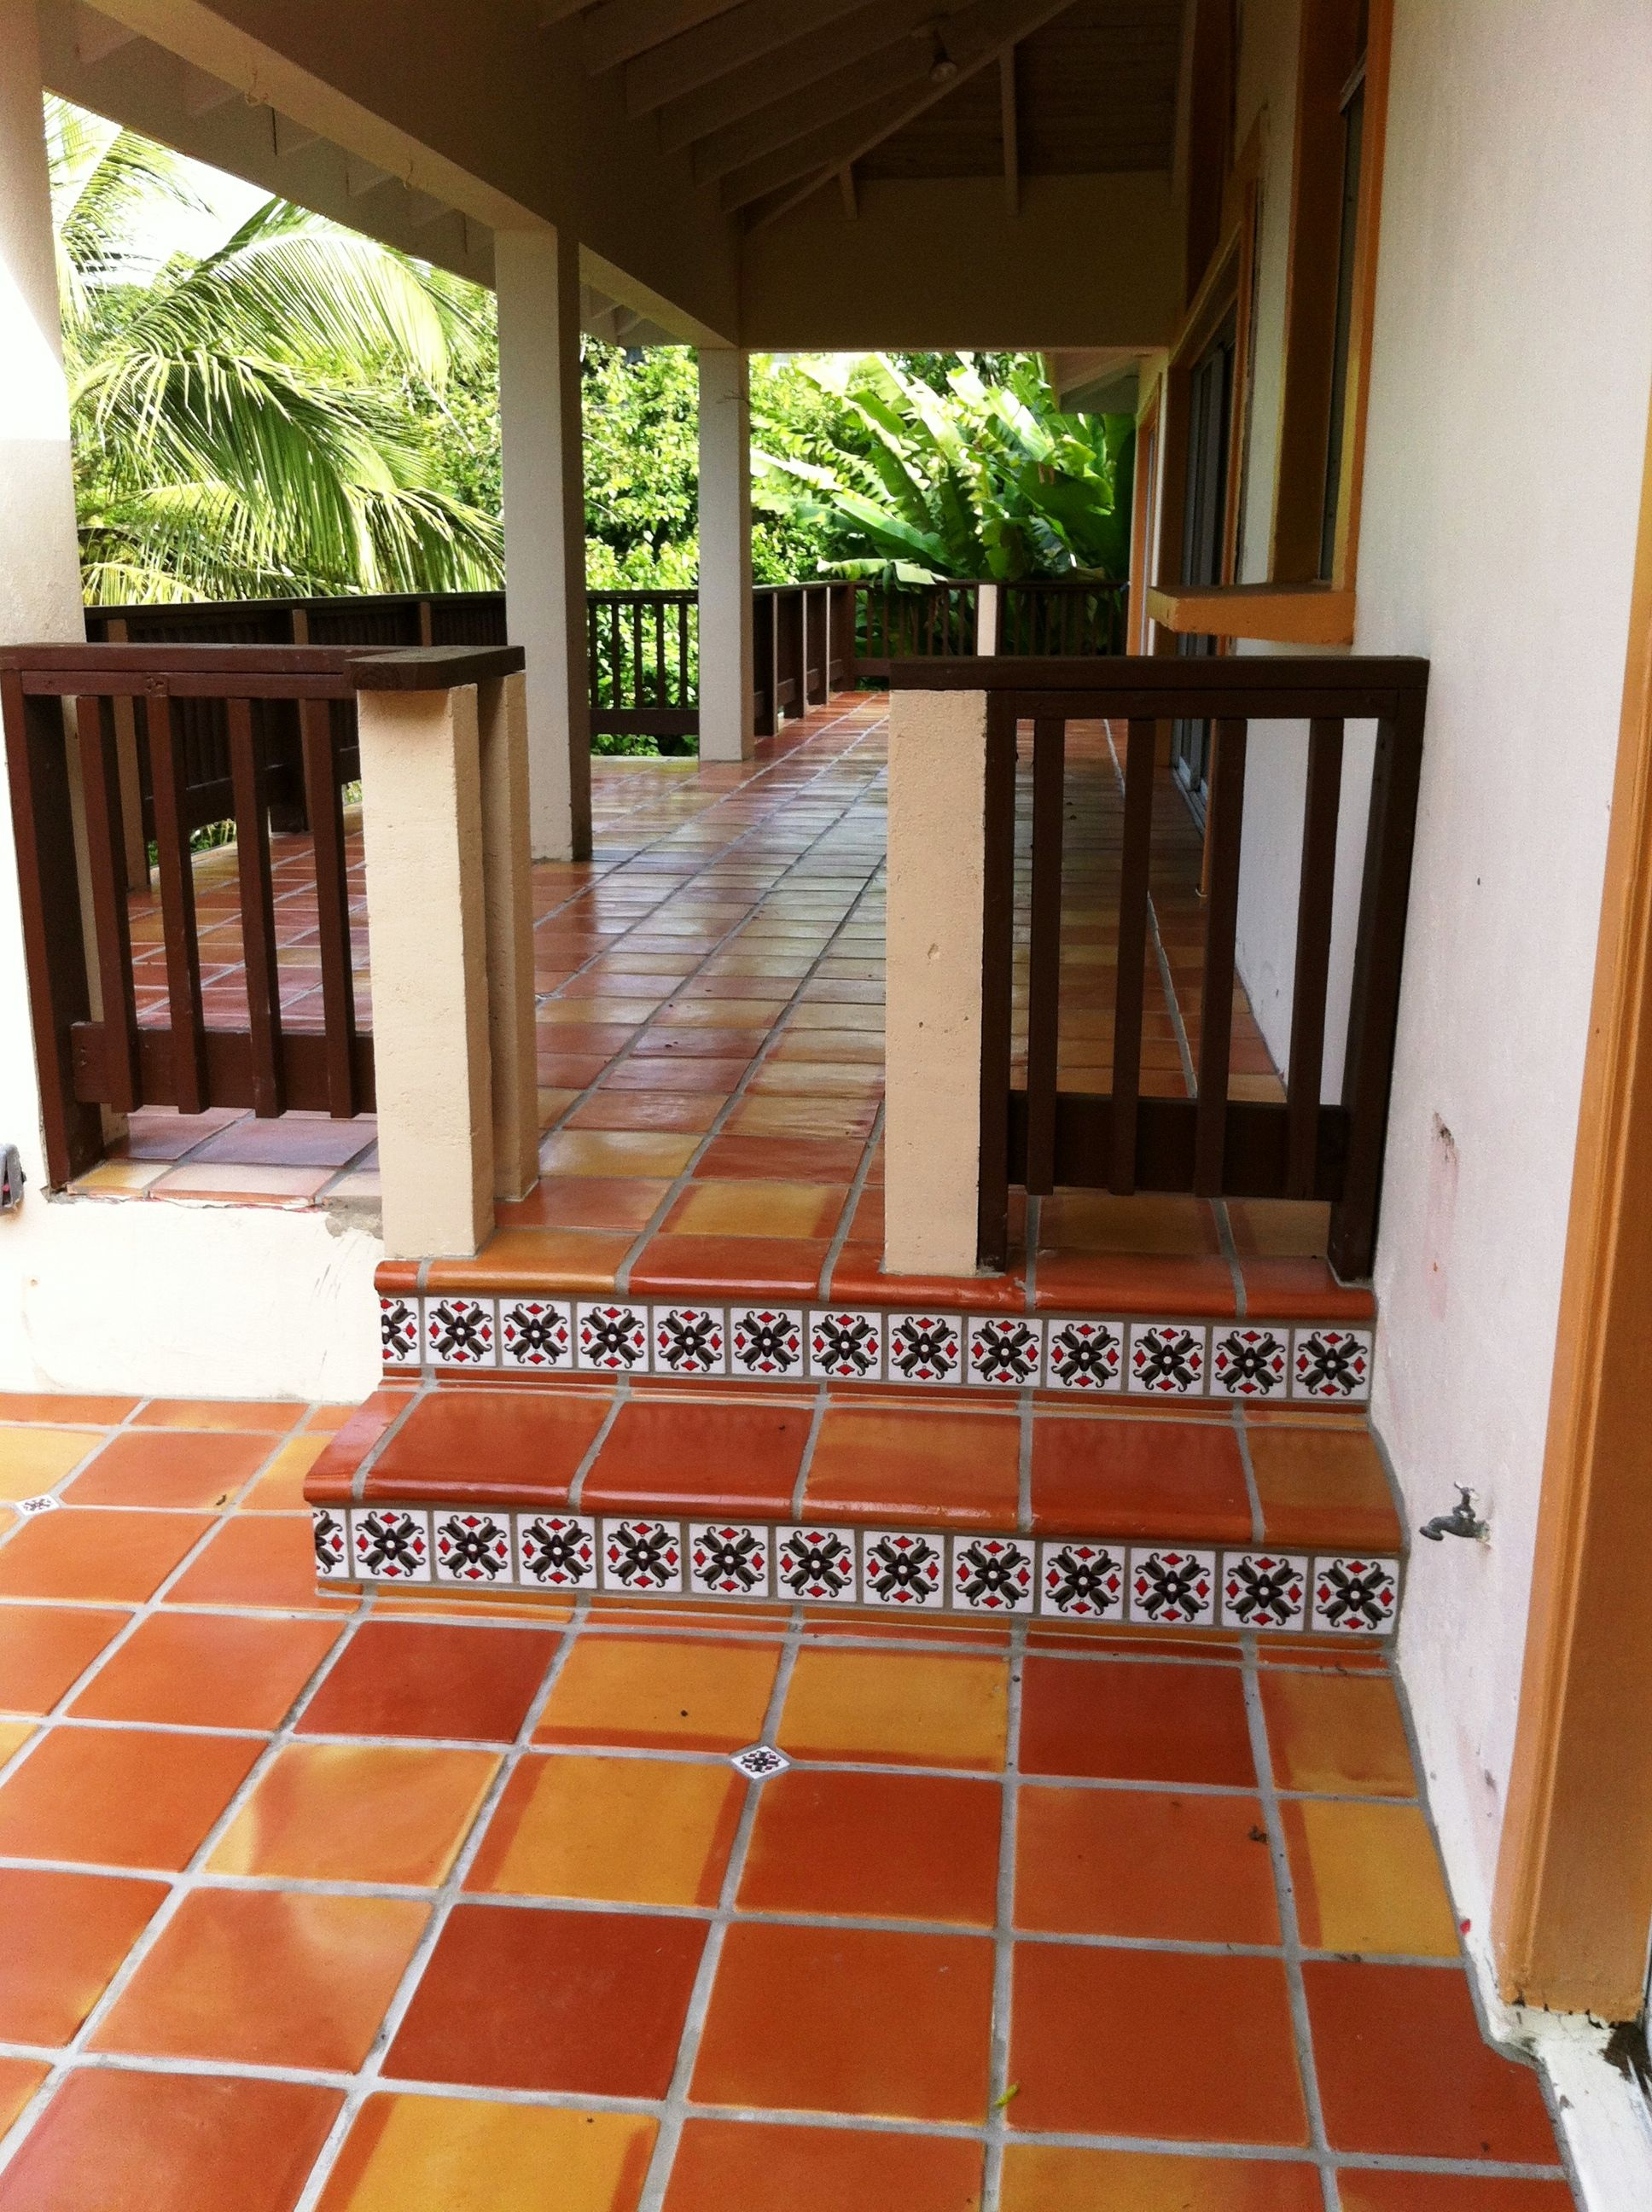 Decorative Patio Tiles Awesome Terracotta Outdoor Patio  Love Terracotta Tilelooking For Ideas Review